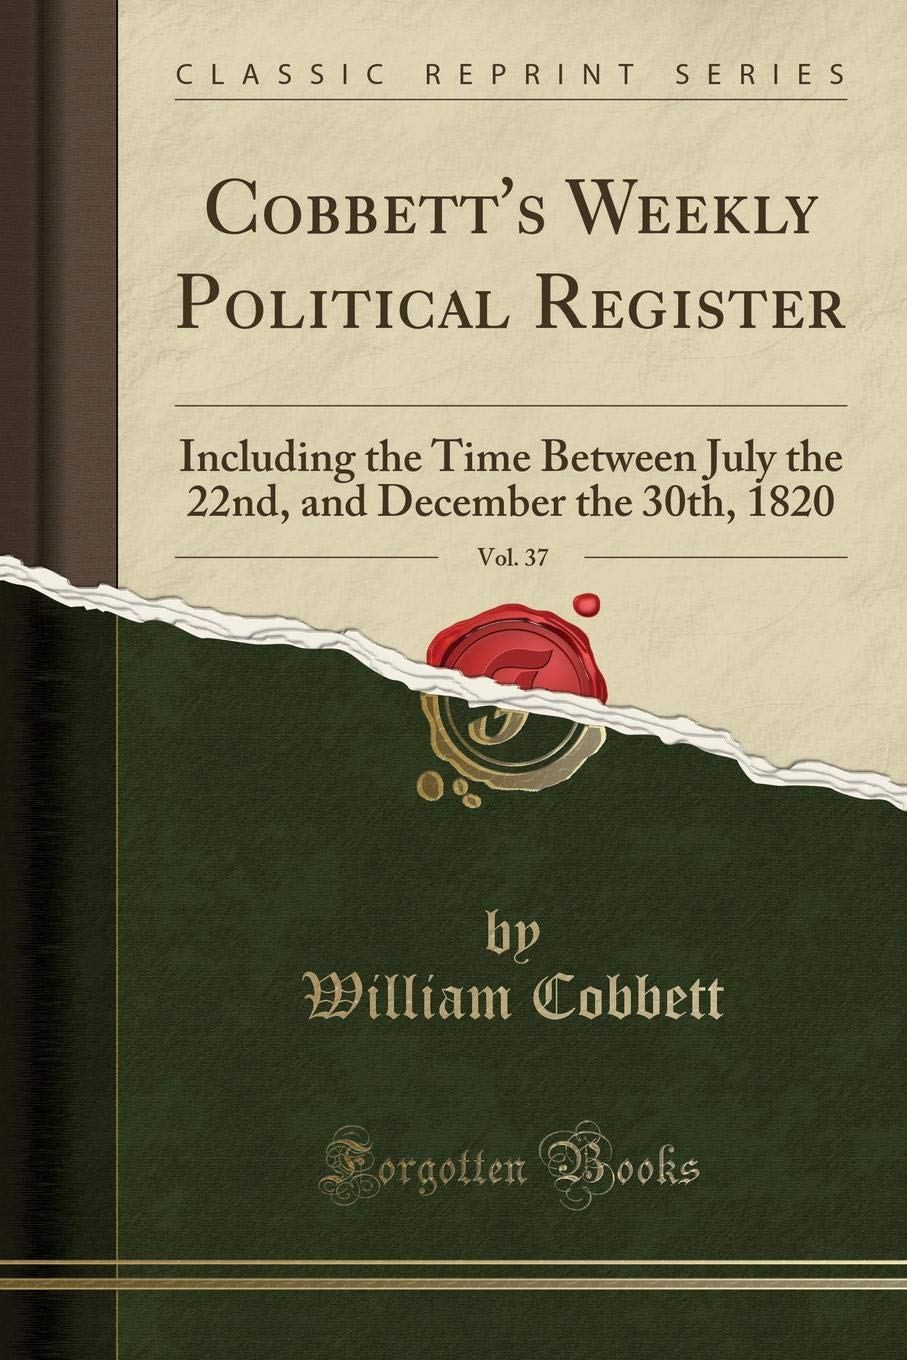 Cobbett's Weekly Political Register, Vol. 37: Including the Time Between July the 22nd, and December the 30th, 1820 (Classic Reprint) PDF